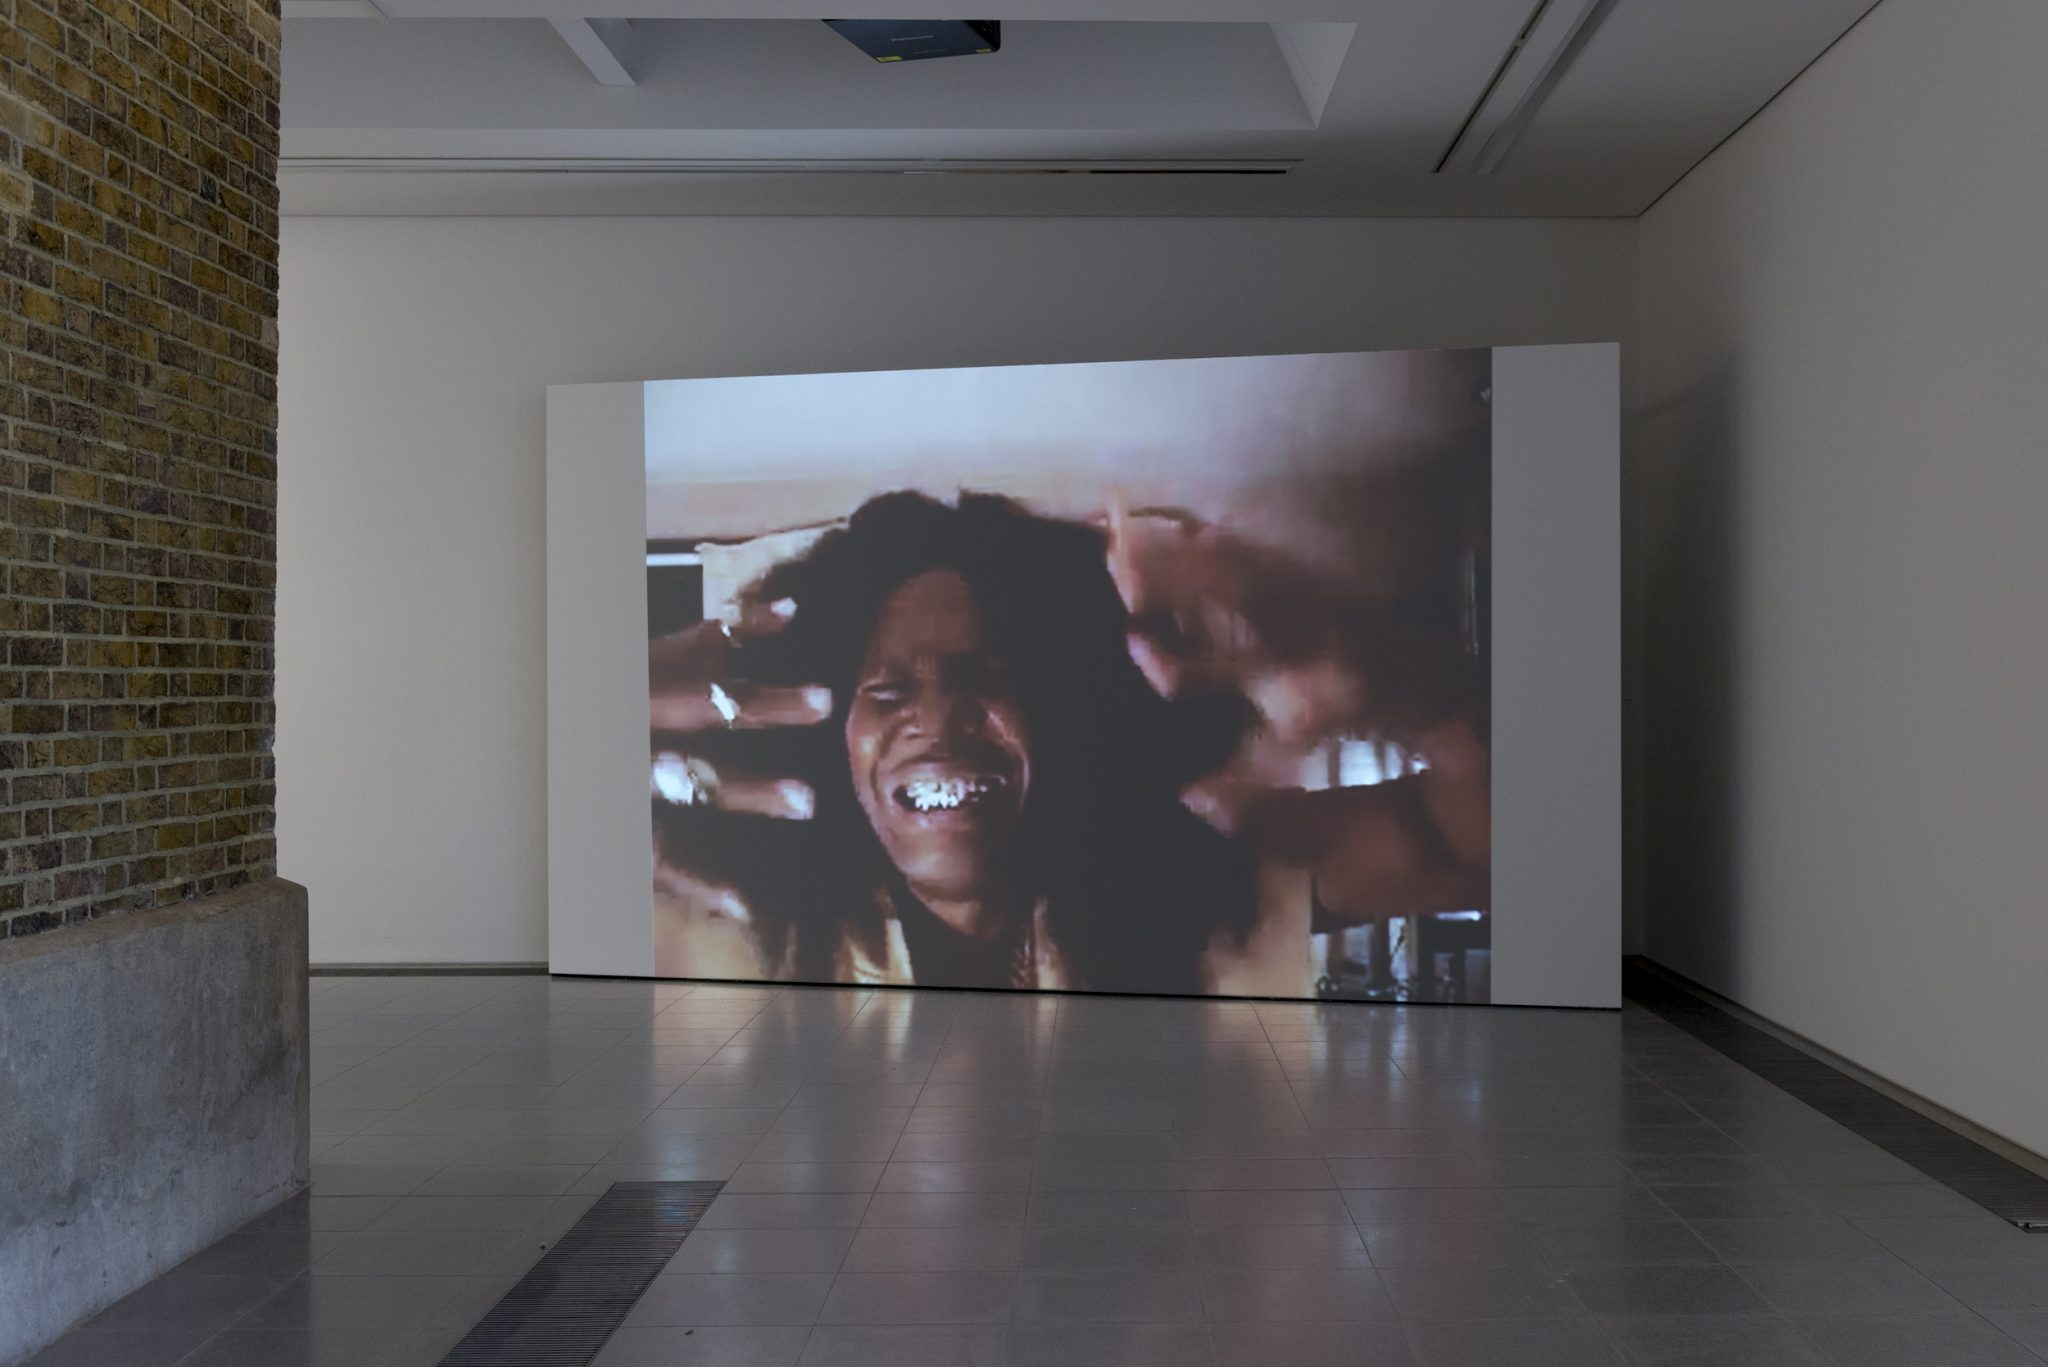 Arthur Jafa, Installation view 'A Series of Utterly Improbable, Yet Extraordinary Renditions', Serpentine Sackler Gallery, London (08 June 2017 – 10 September 2017). Image © Mike Din Download image